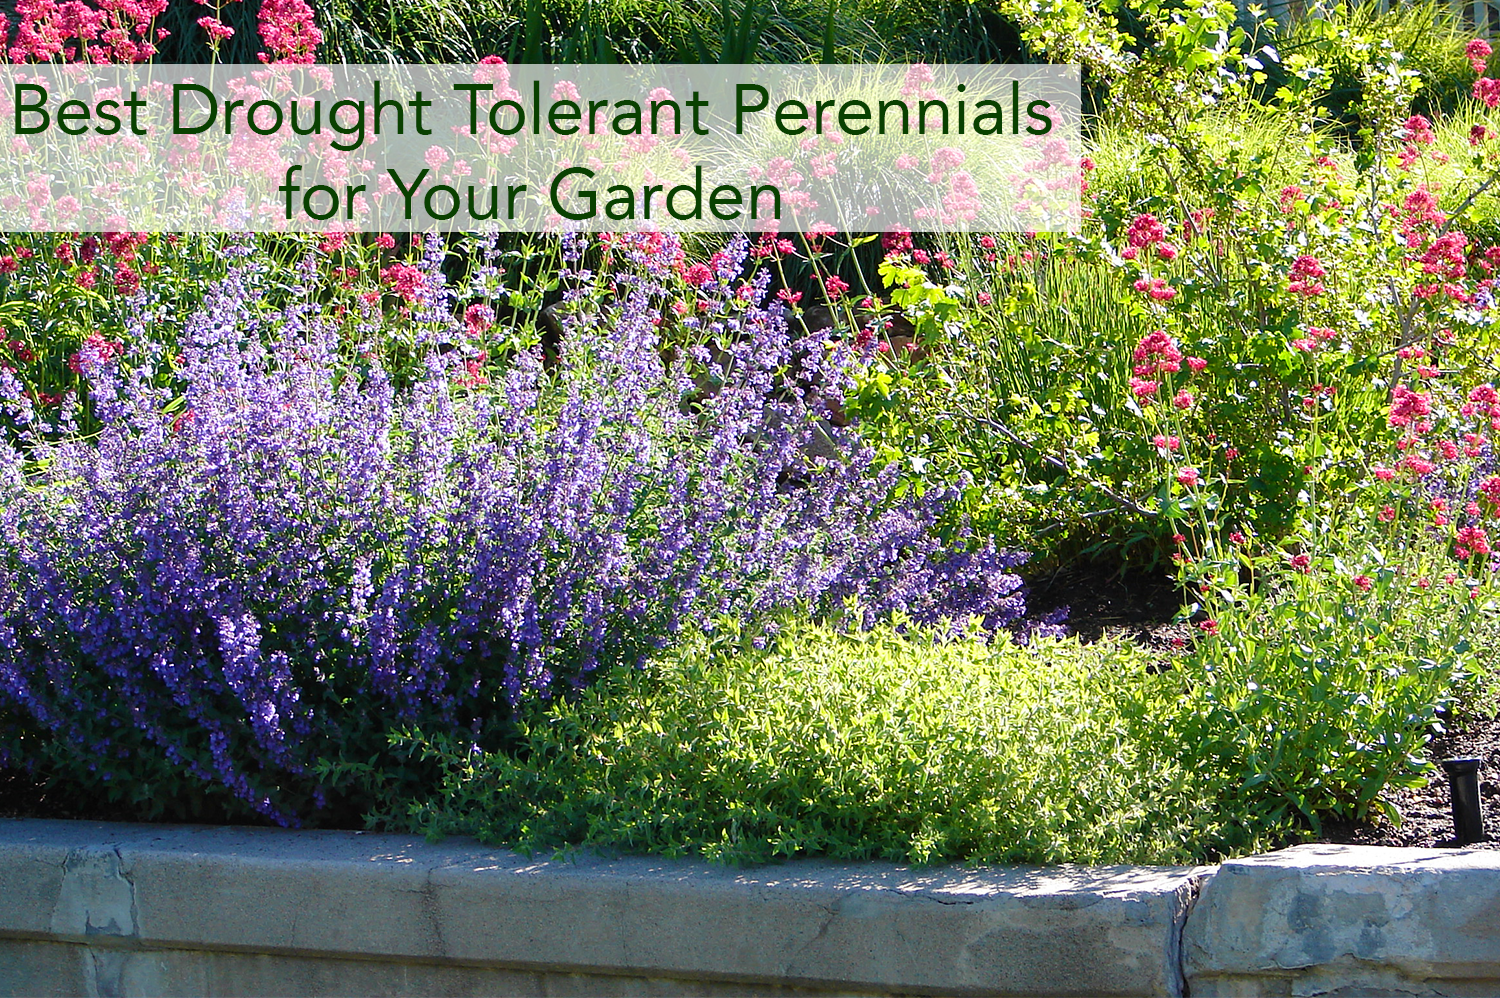 Drought tolerant perennials in a garden together.